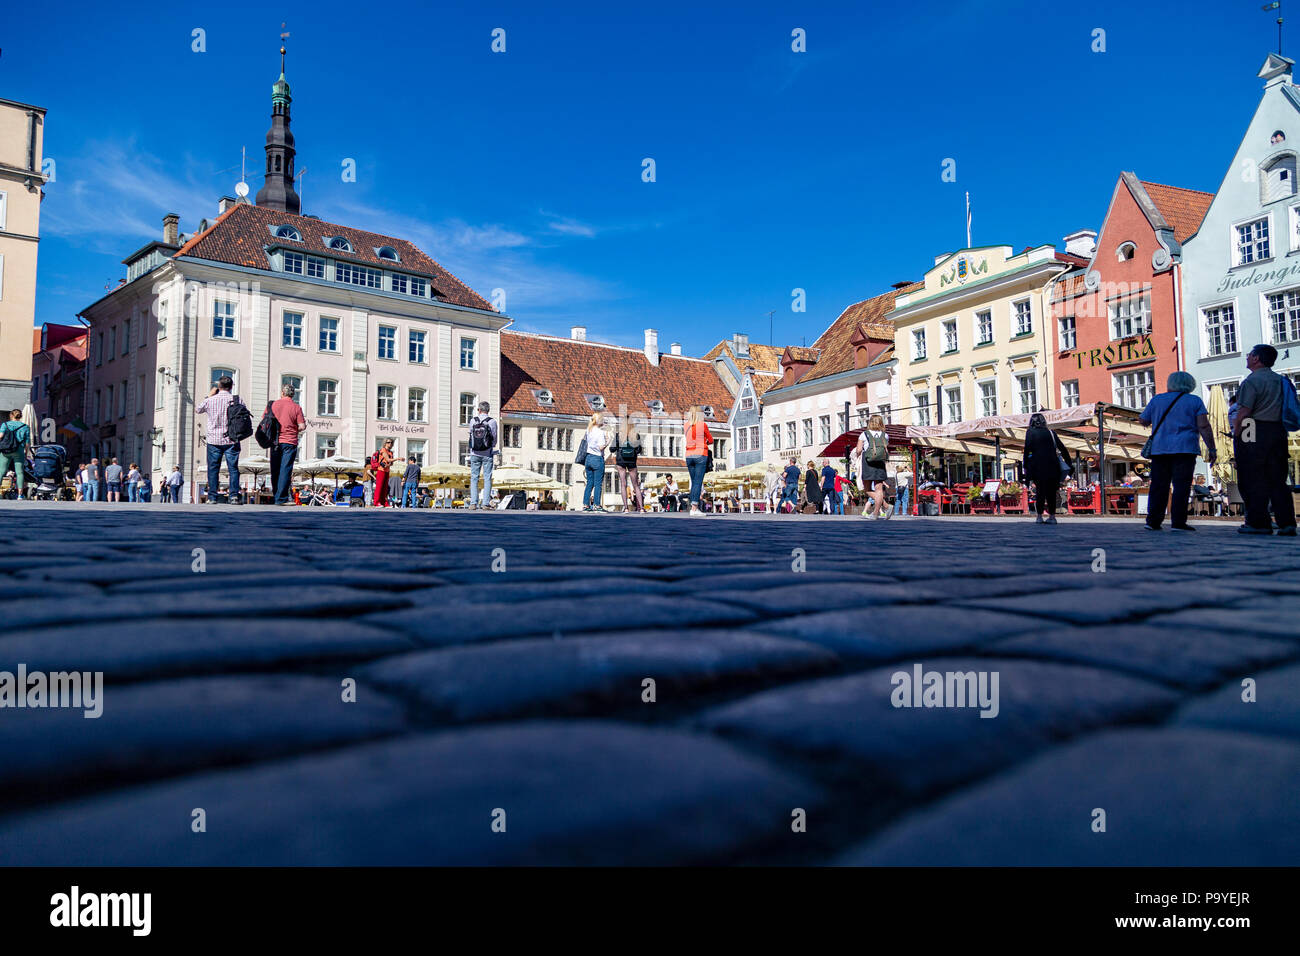 Twon Hall square in Tallin, Estonia - Stock Image